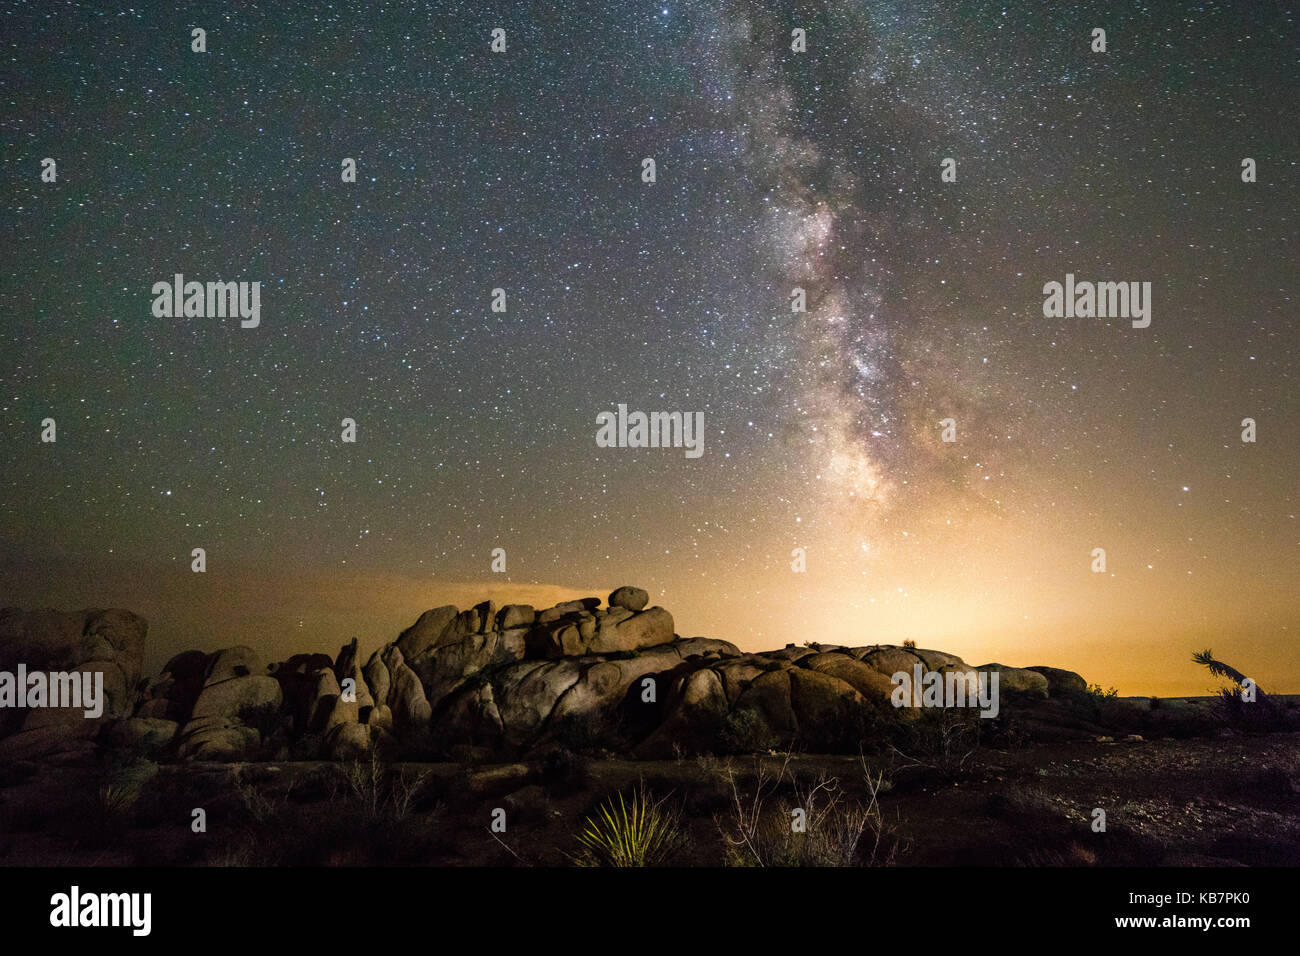 milky way - Stock Image